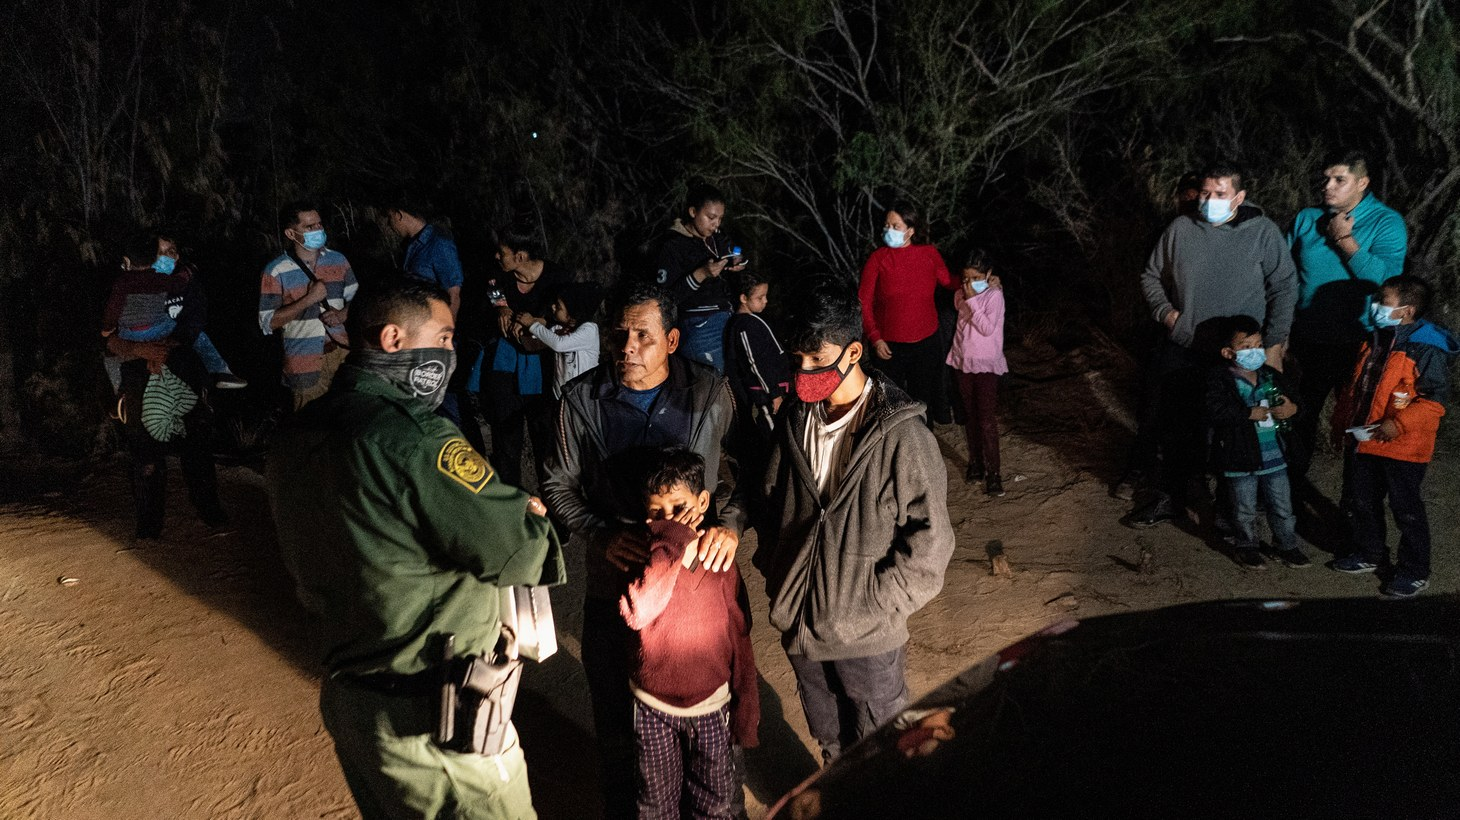 Asylum-seeking migrant families wait to be transported by the U.S. Border Patrol after crossing the Rio Grande river into the United States from Mexico in Roma, Texas, U.S., April 27, 2021.